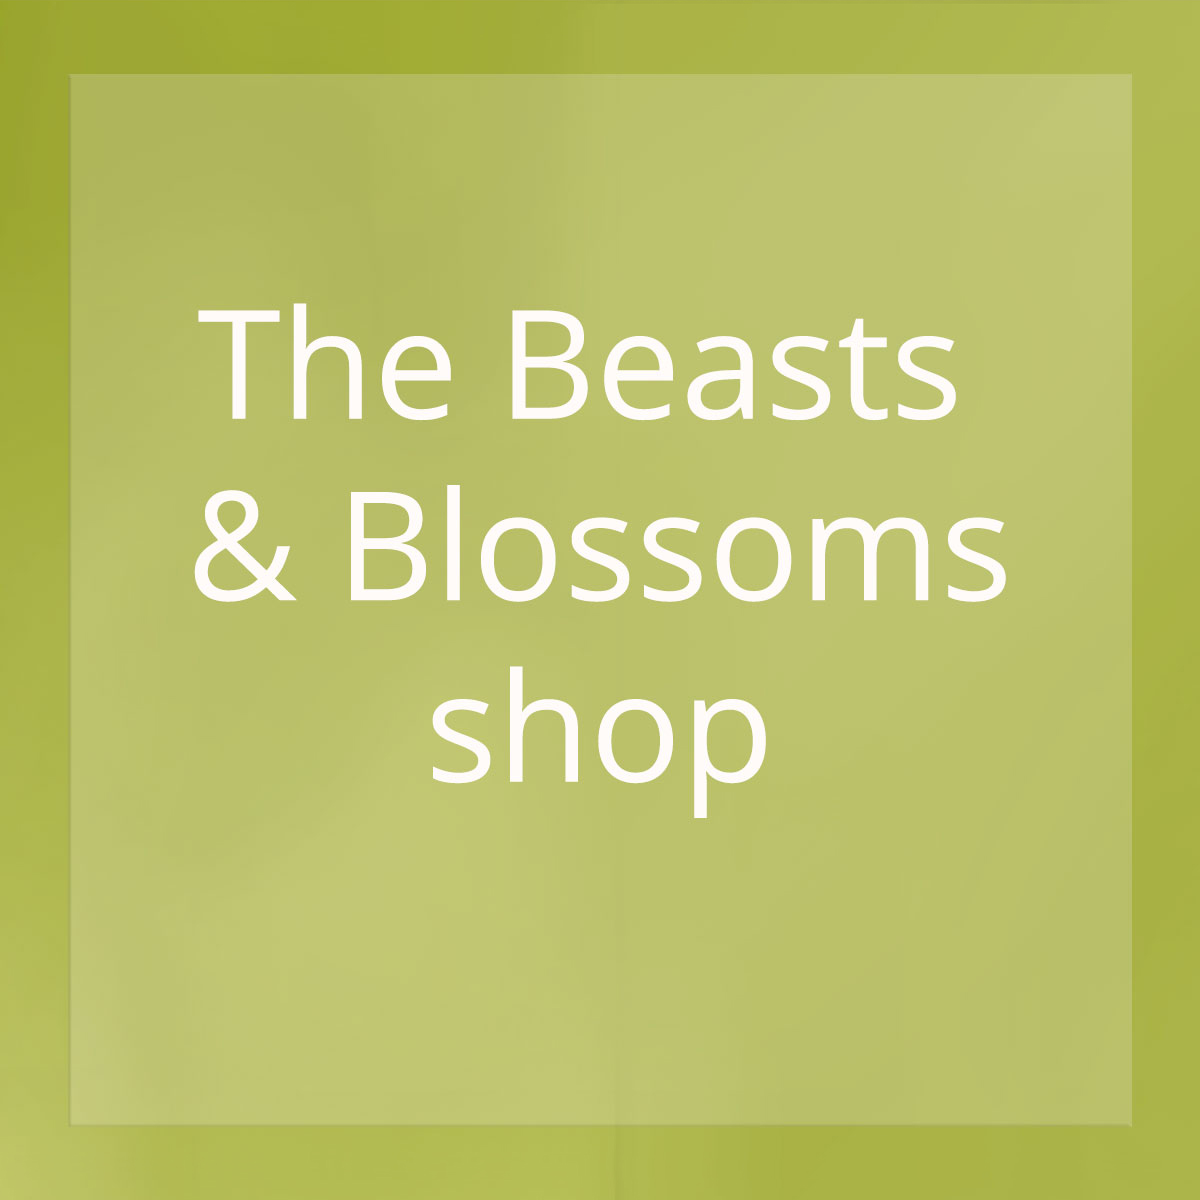 Visit the Beasts & Blossoms shop